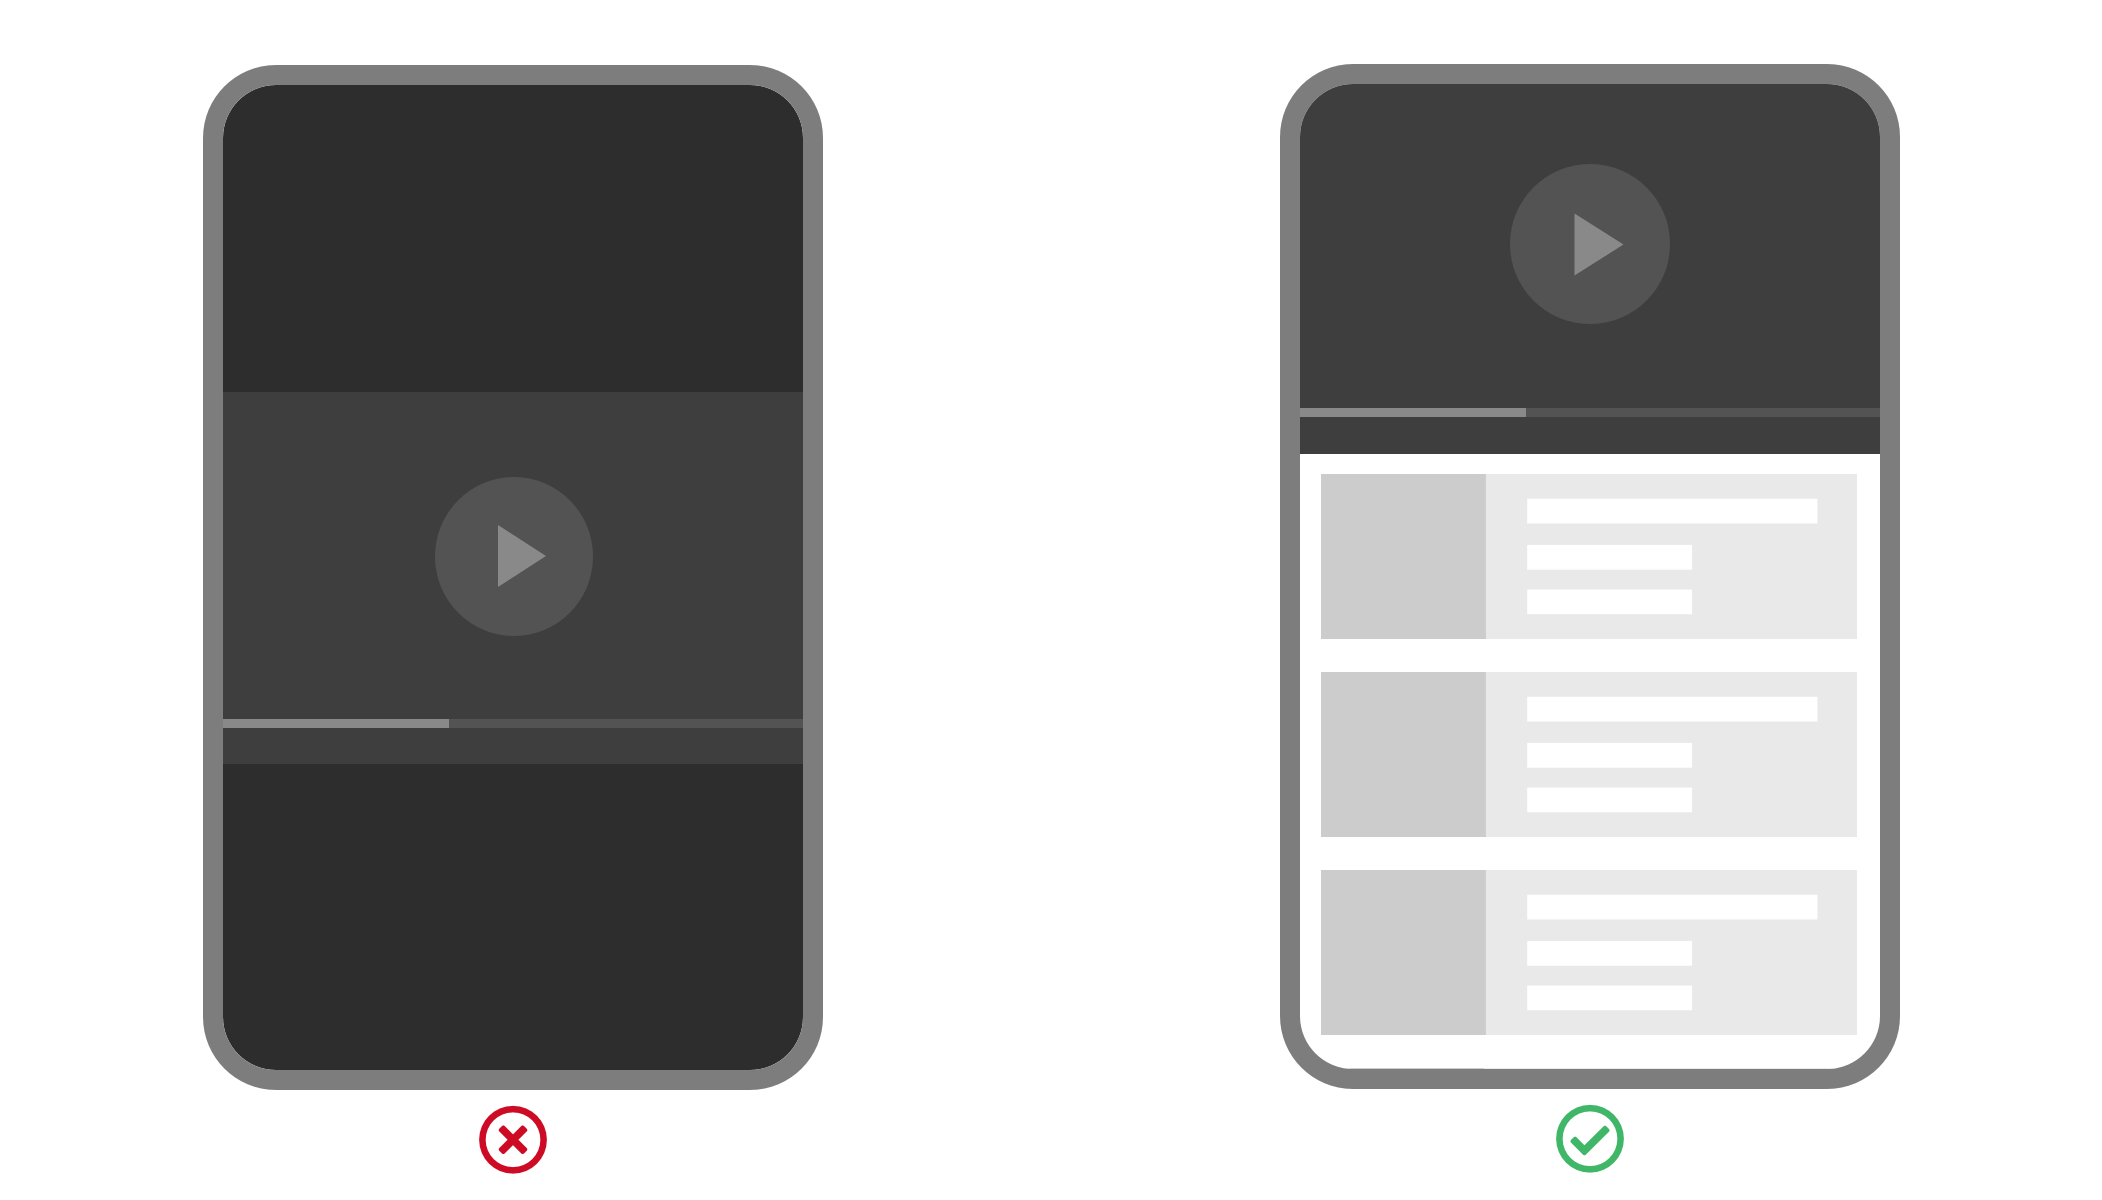 Integrating Video and Web Content: Lessons in User Interface Design